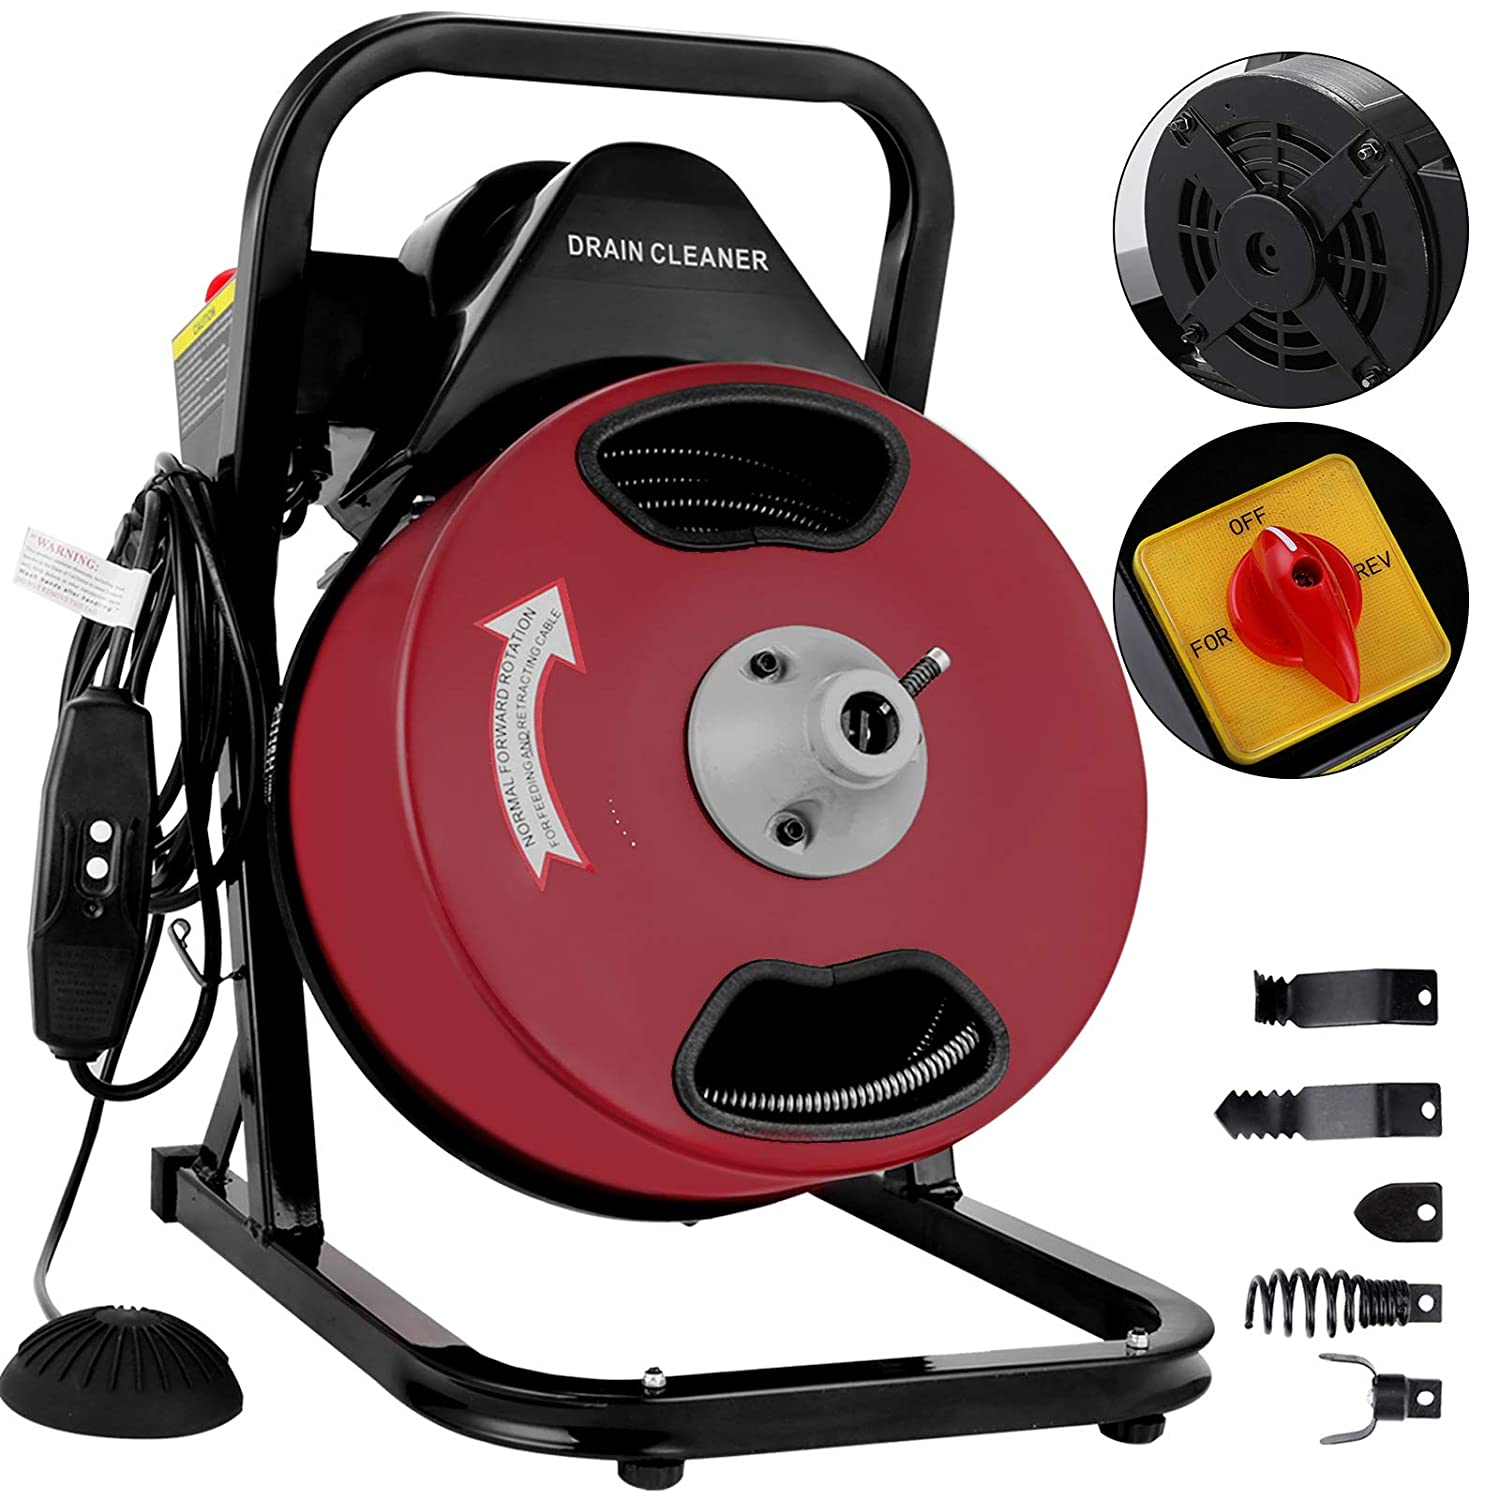 """VEVOR 50 Feet by 1/2 Inch Electric Drain Auger with 4 Cutter & Foot Switch Drain Cleaner Machine Sewer Snake Drill Drain Auger Cleaner for 1"""" to 4"""" Pipes (50 Ft x 1/2 Inch)"""